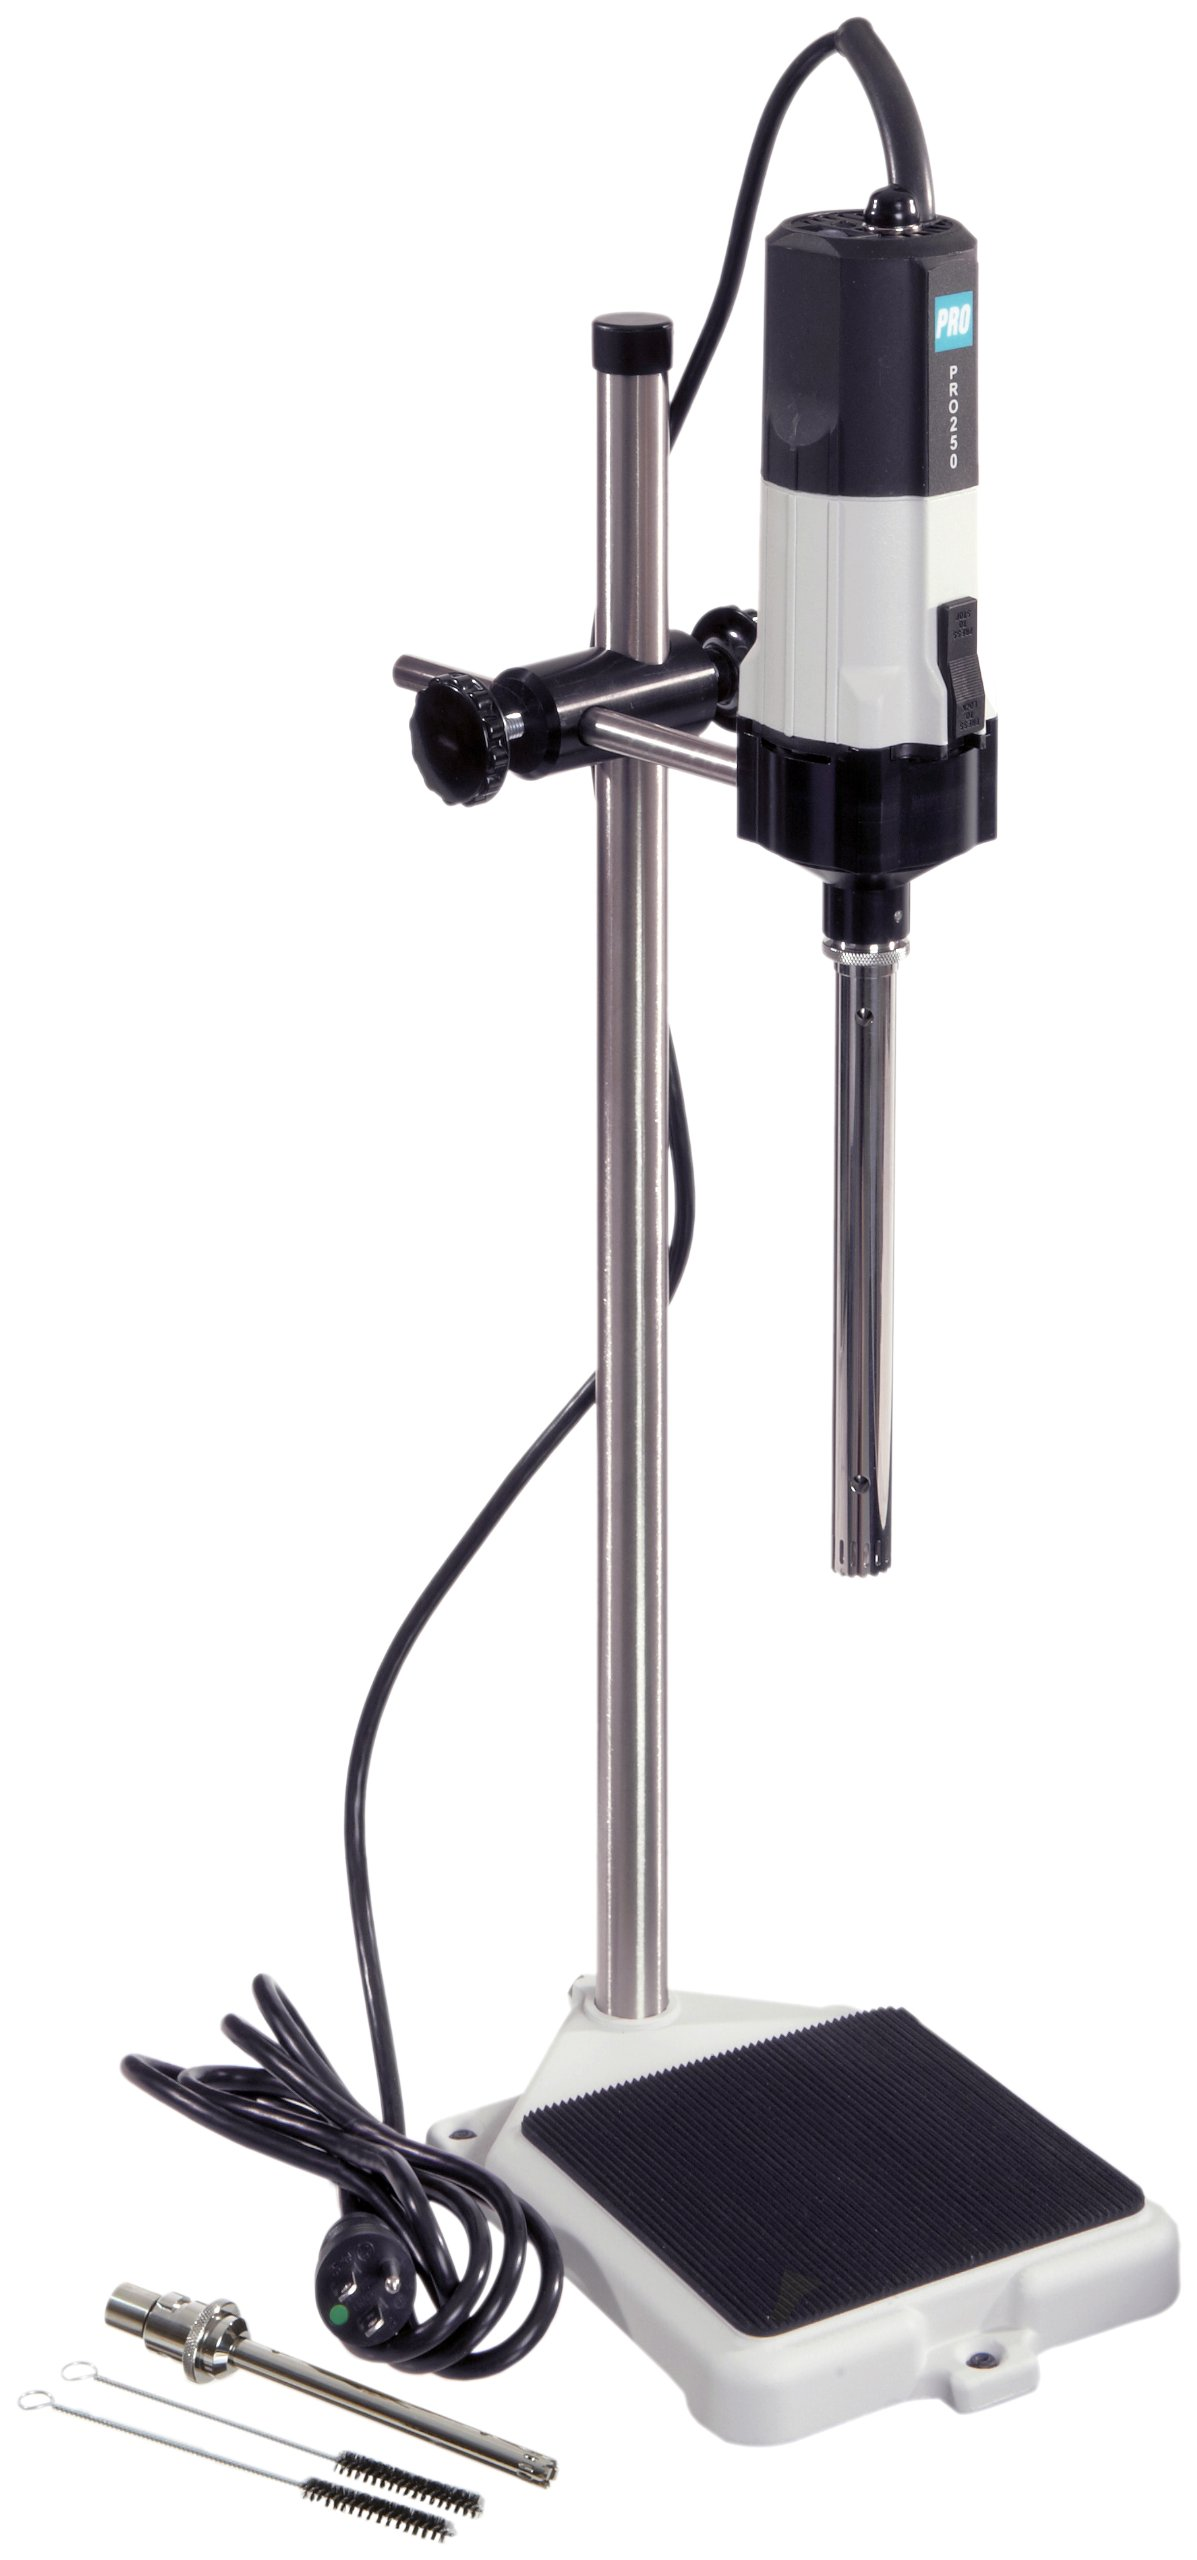 PRO Scientific PRO-PK-01250MXP Premium Max-Homogenizing Package, (2) Saw-tooth Generator Probes, Stand Assembly, 10,000-30,000 rpm, 115V by PRO Scientific